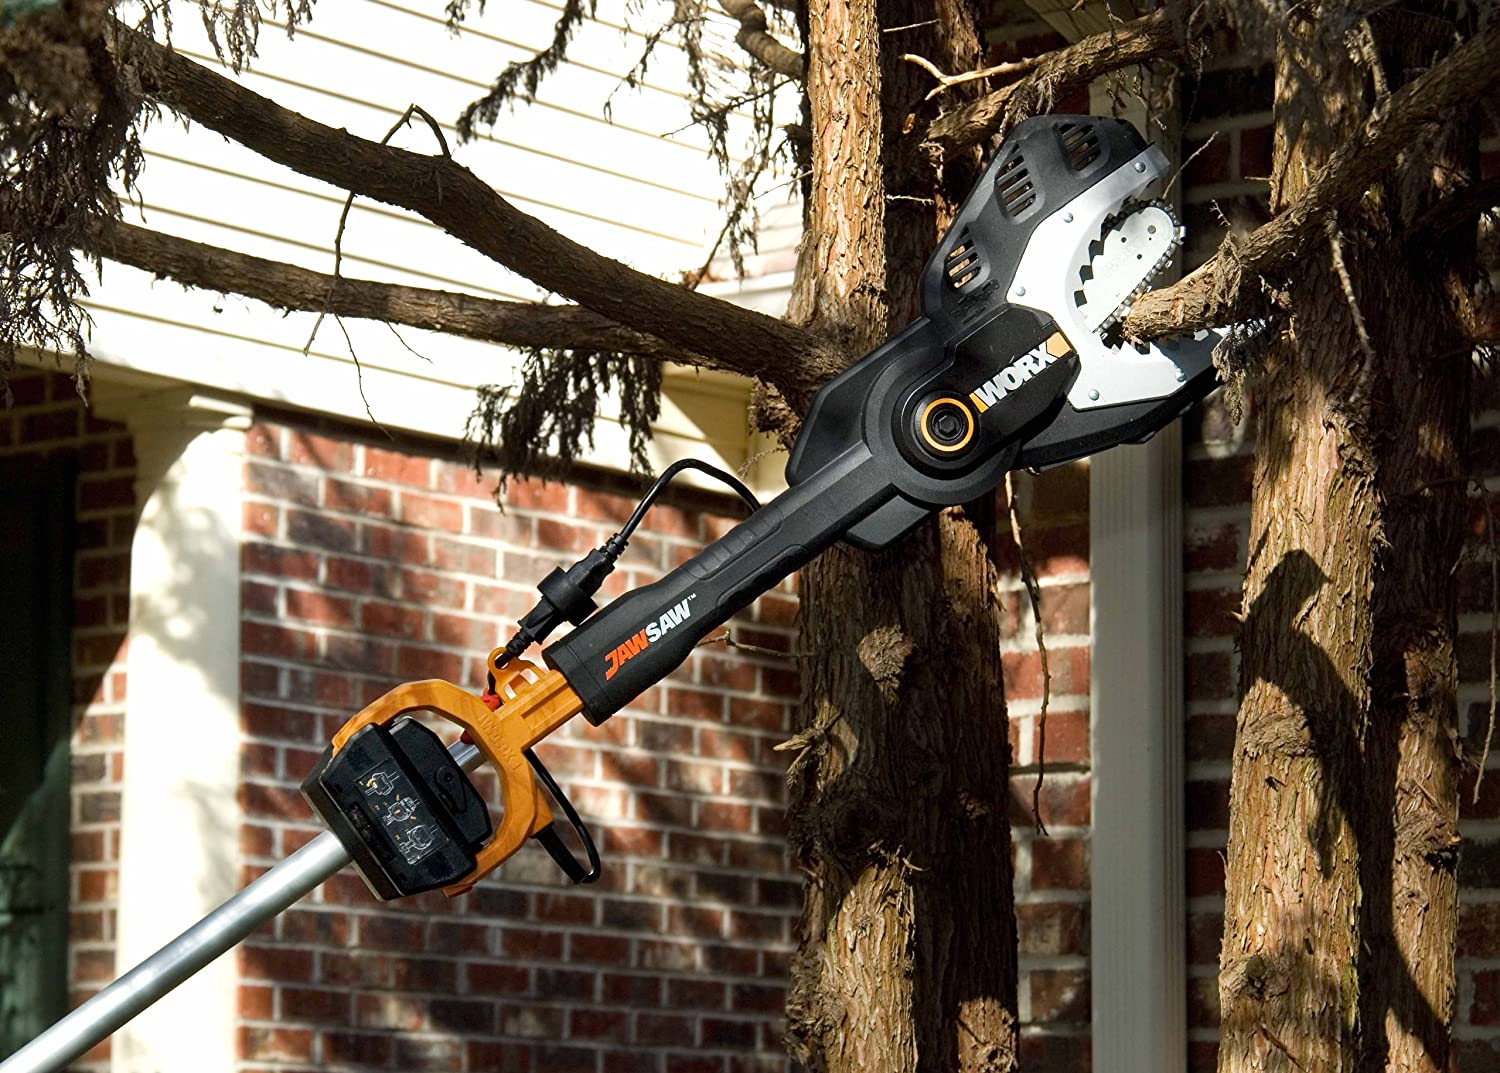 WORX WG308 Chainsaws product image 2